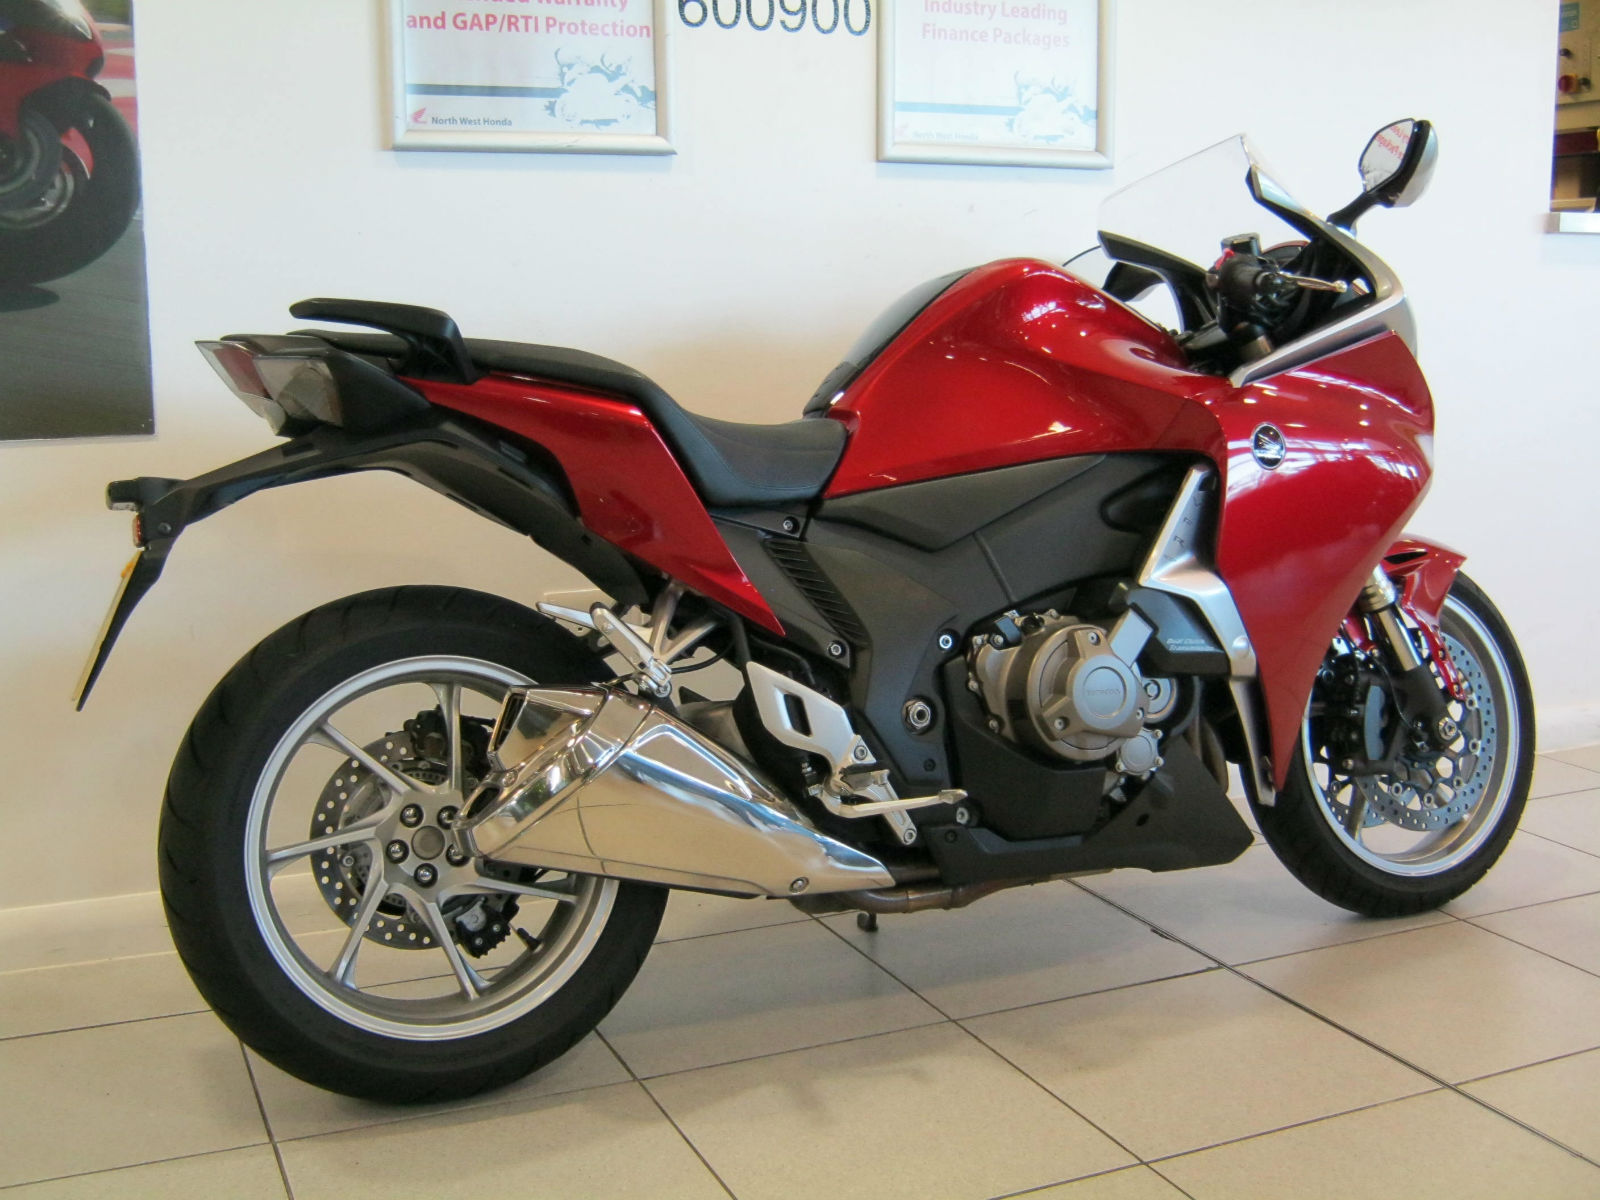 honda vfr 1200 fd d dct sports tourer ex demonstrator red fdsh metallic. Black Bedroom Furniture Sets. Home Design Ideas